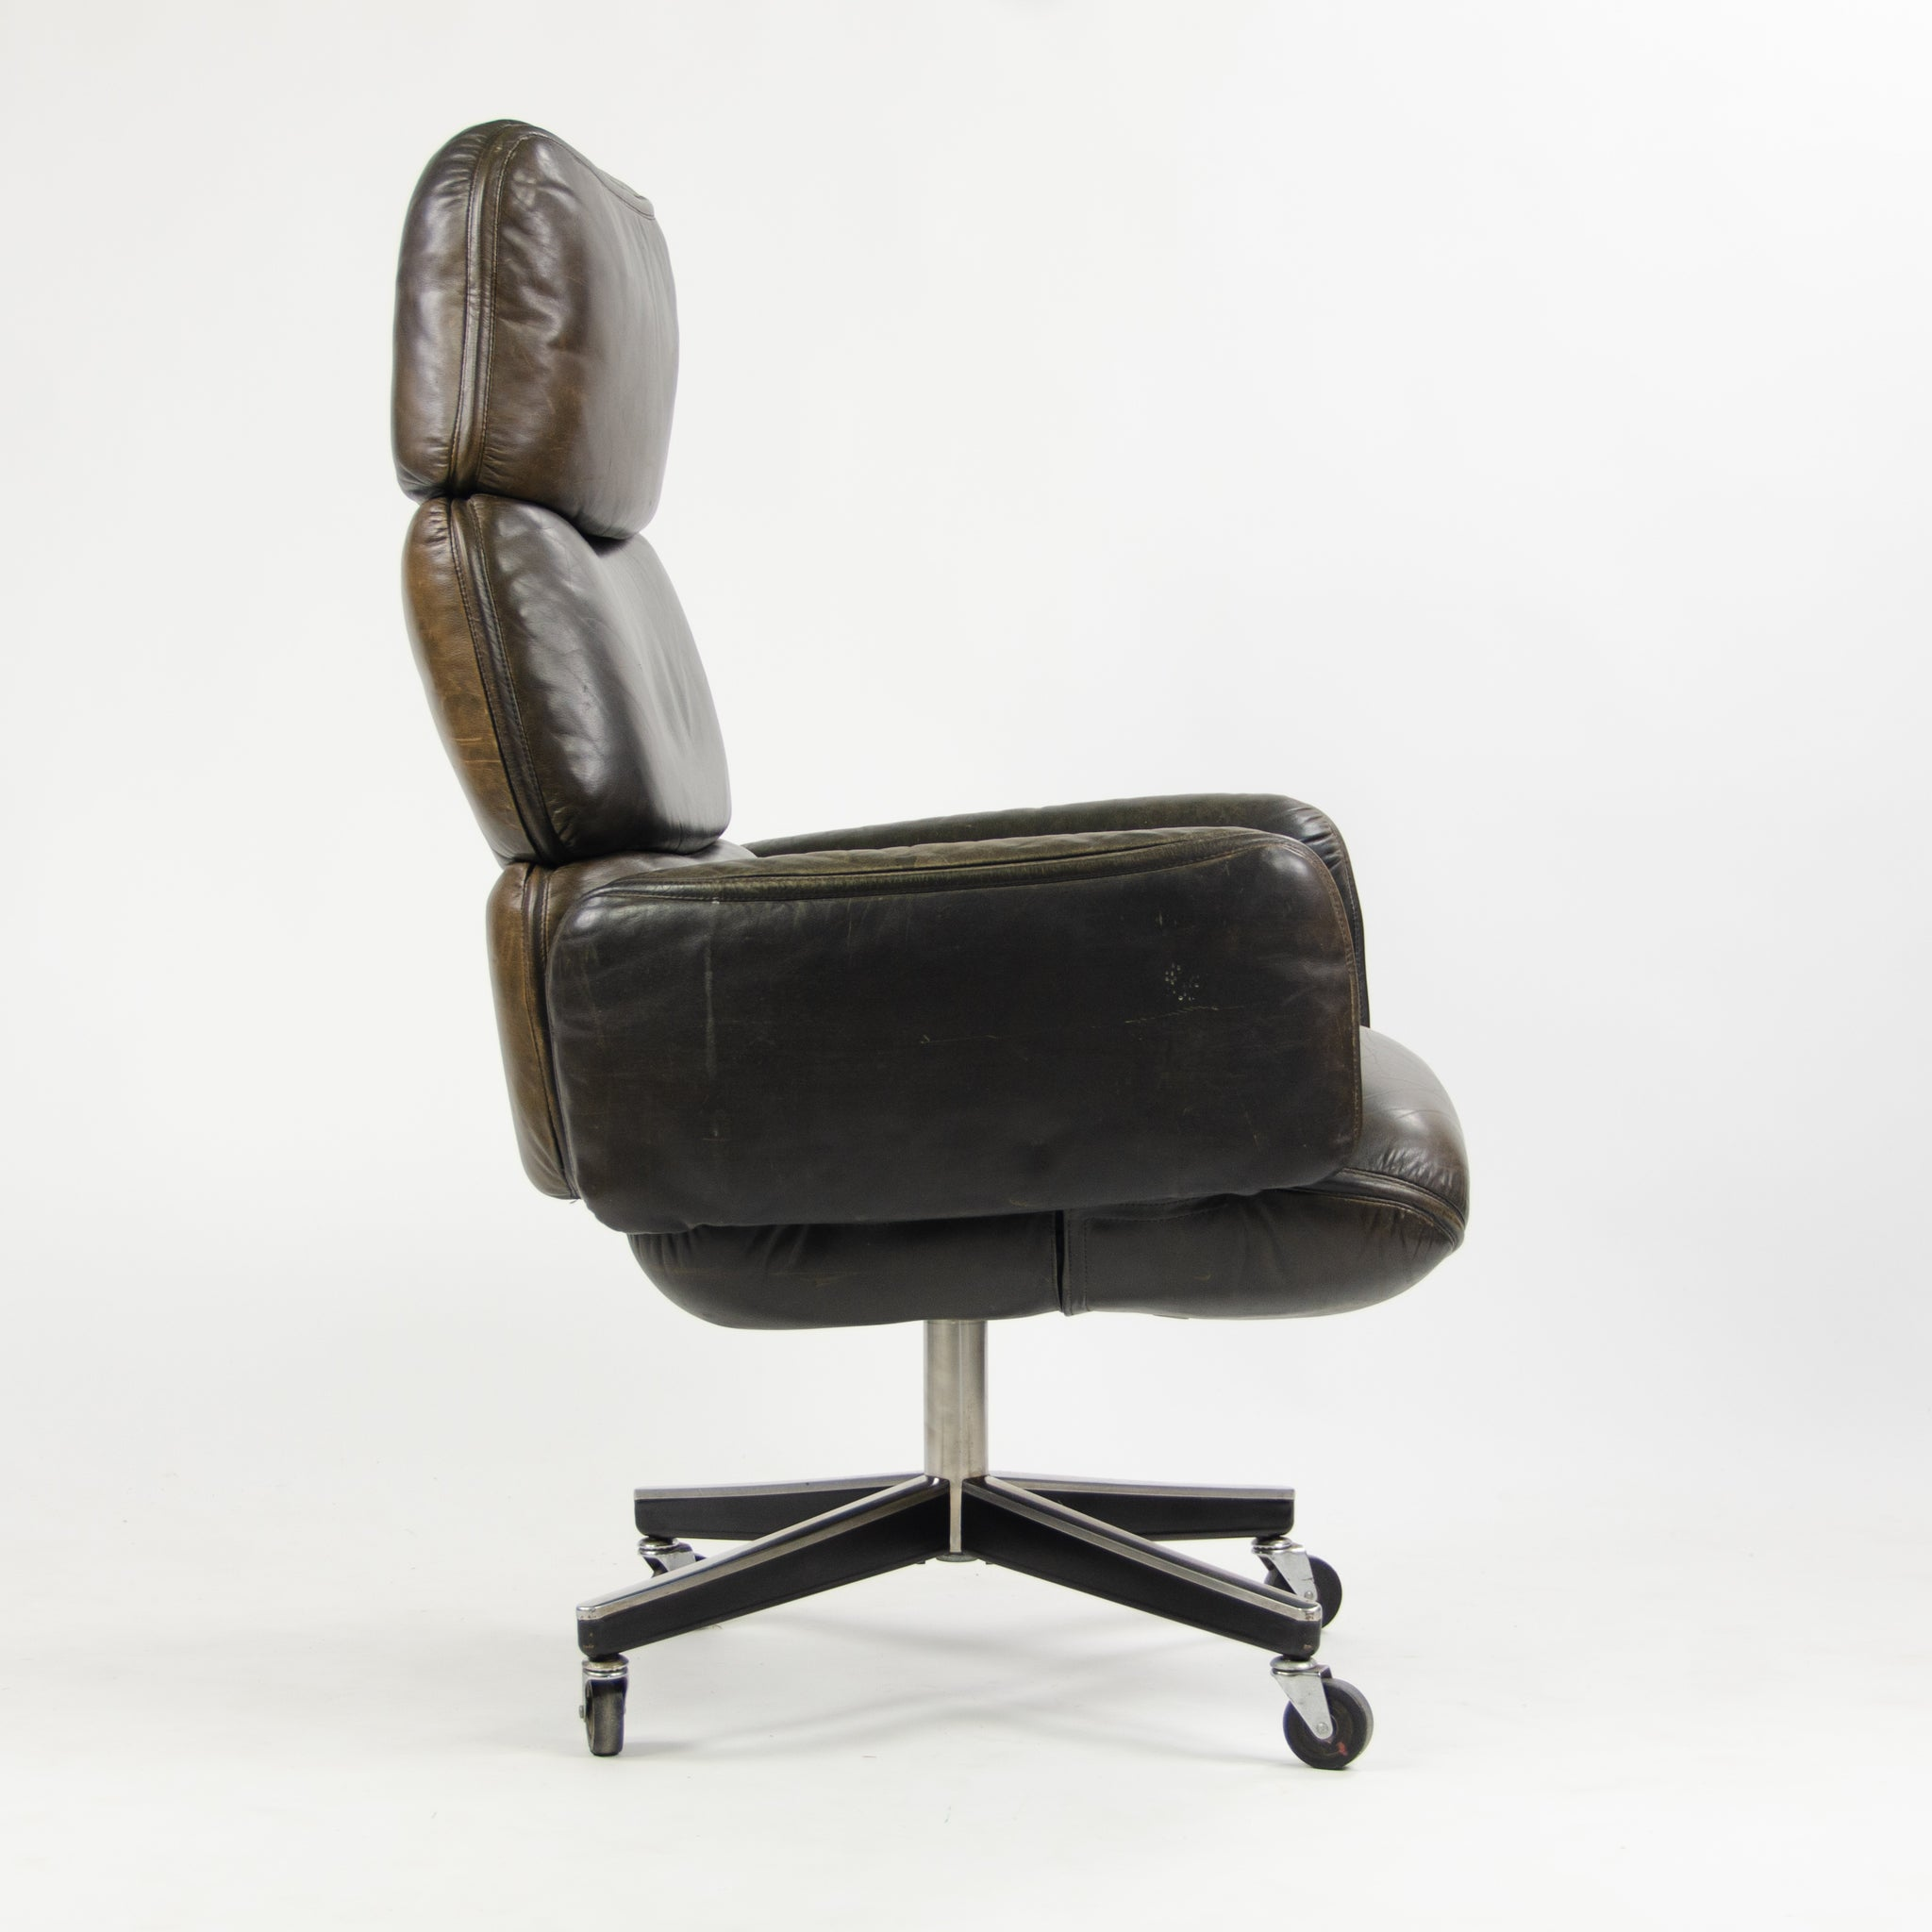 SOLD 1970's Otto Zapf for Knoll High Back Office Desk Chair